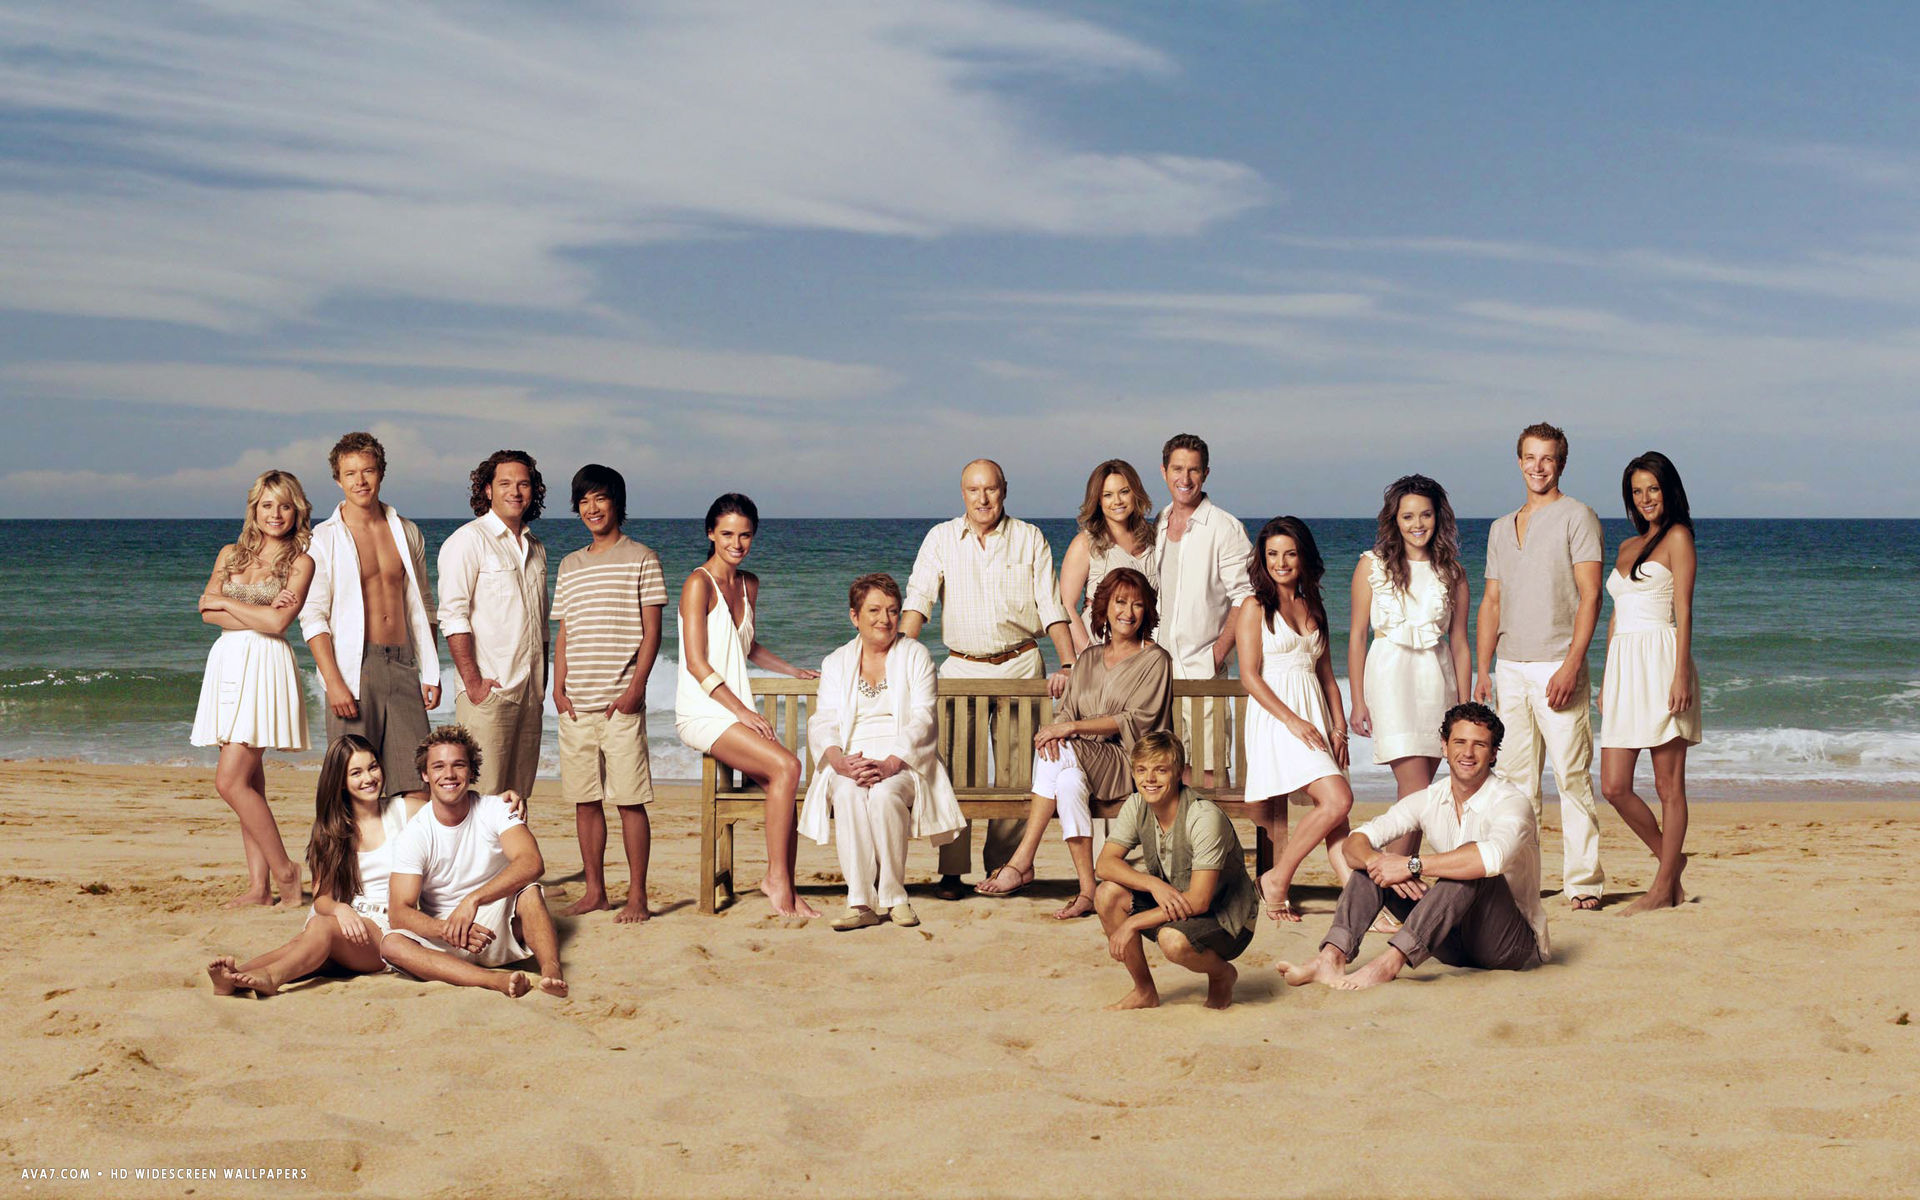 home and away tv series show hd widescreen wallpaper